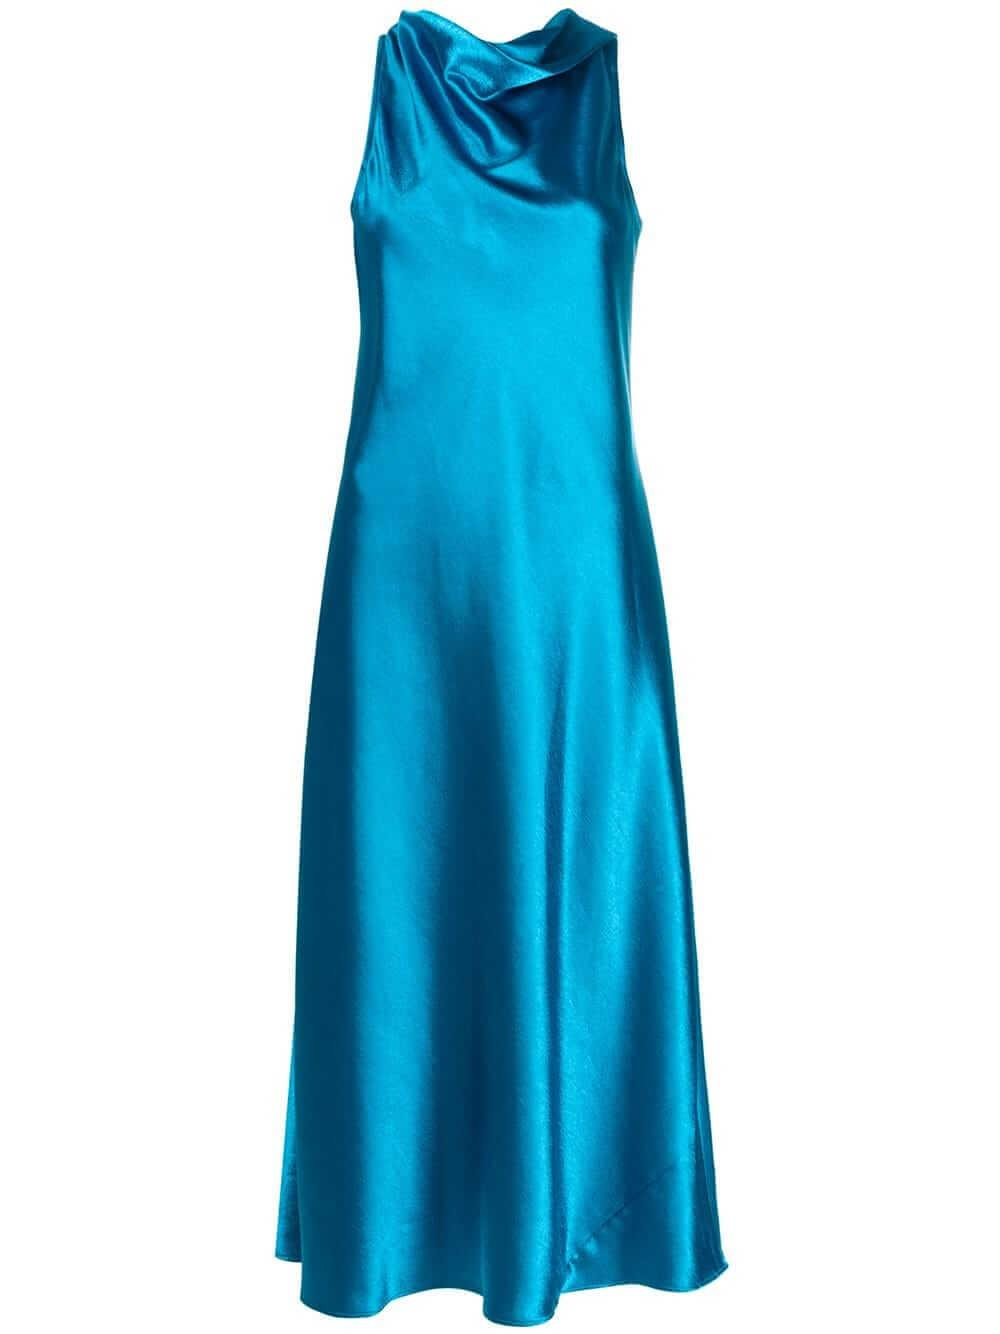 Andy Glossy Satin Cowl Neck Dress